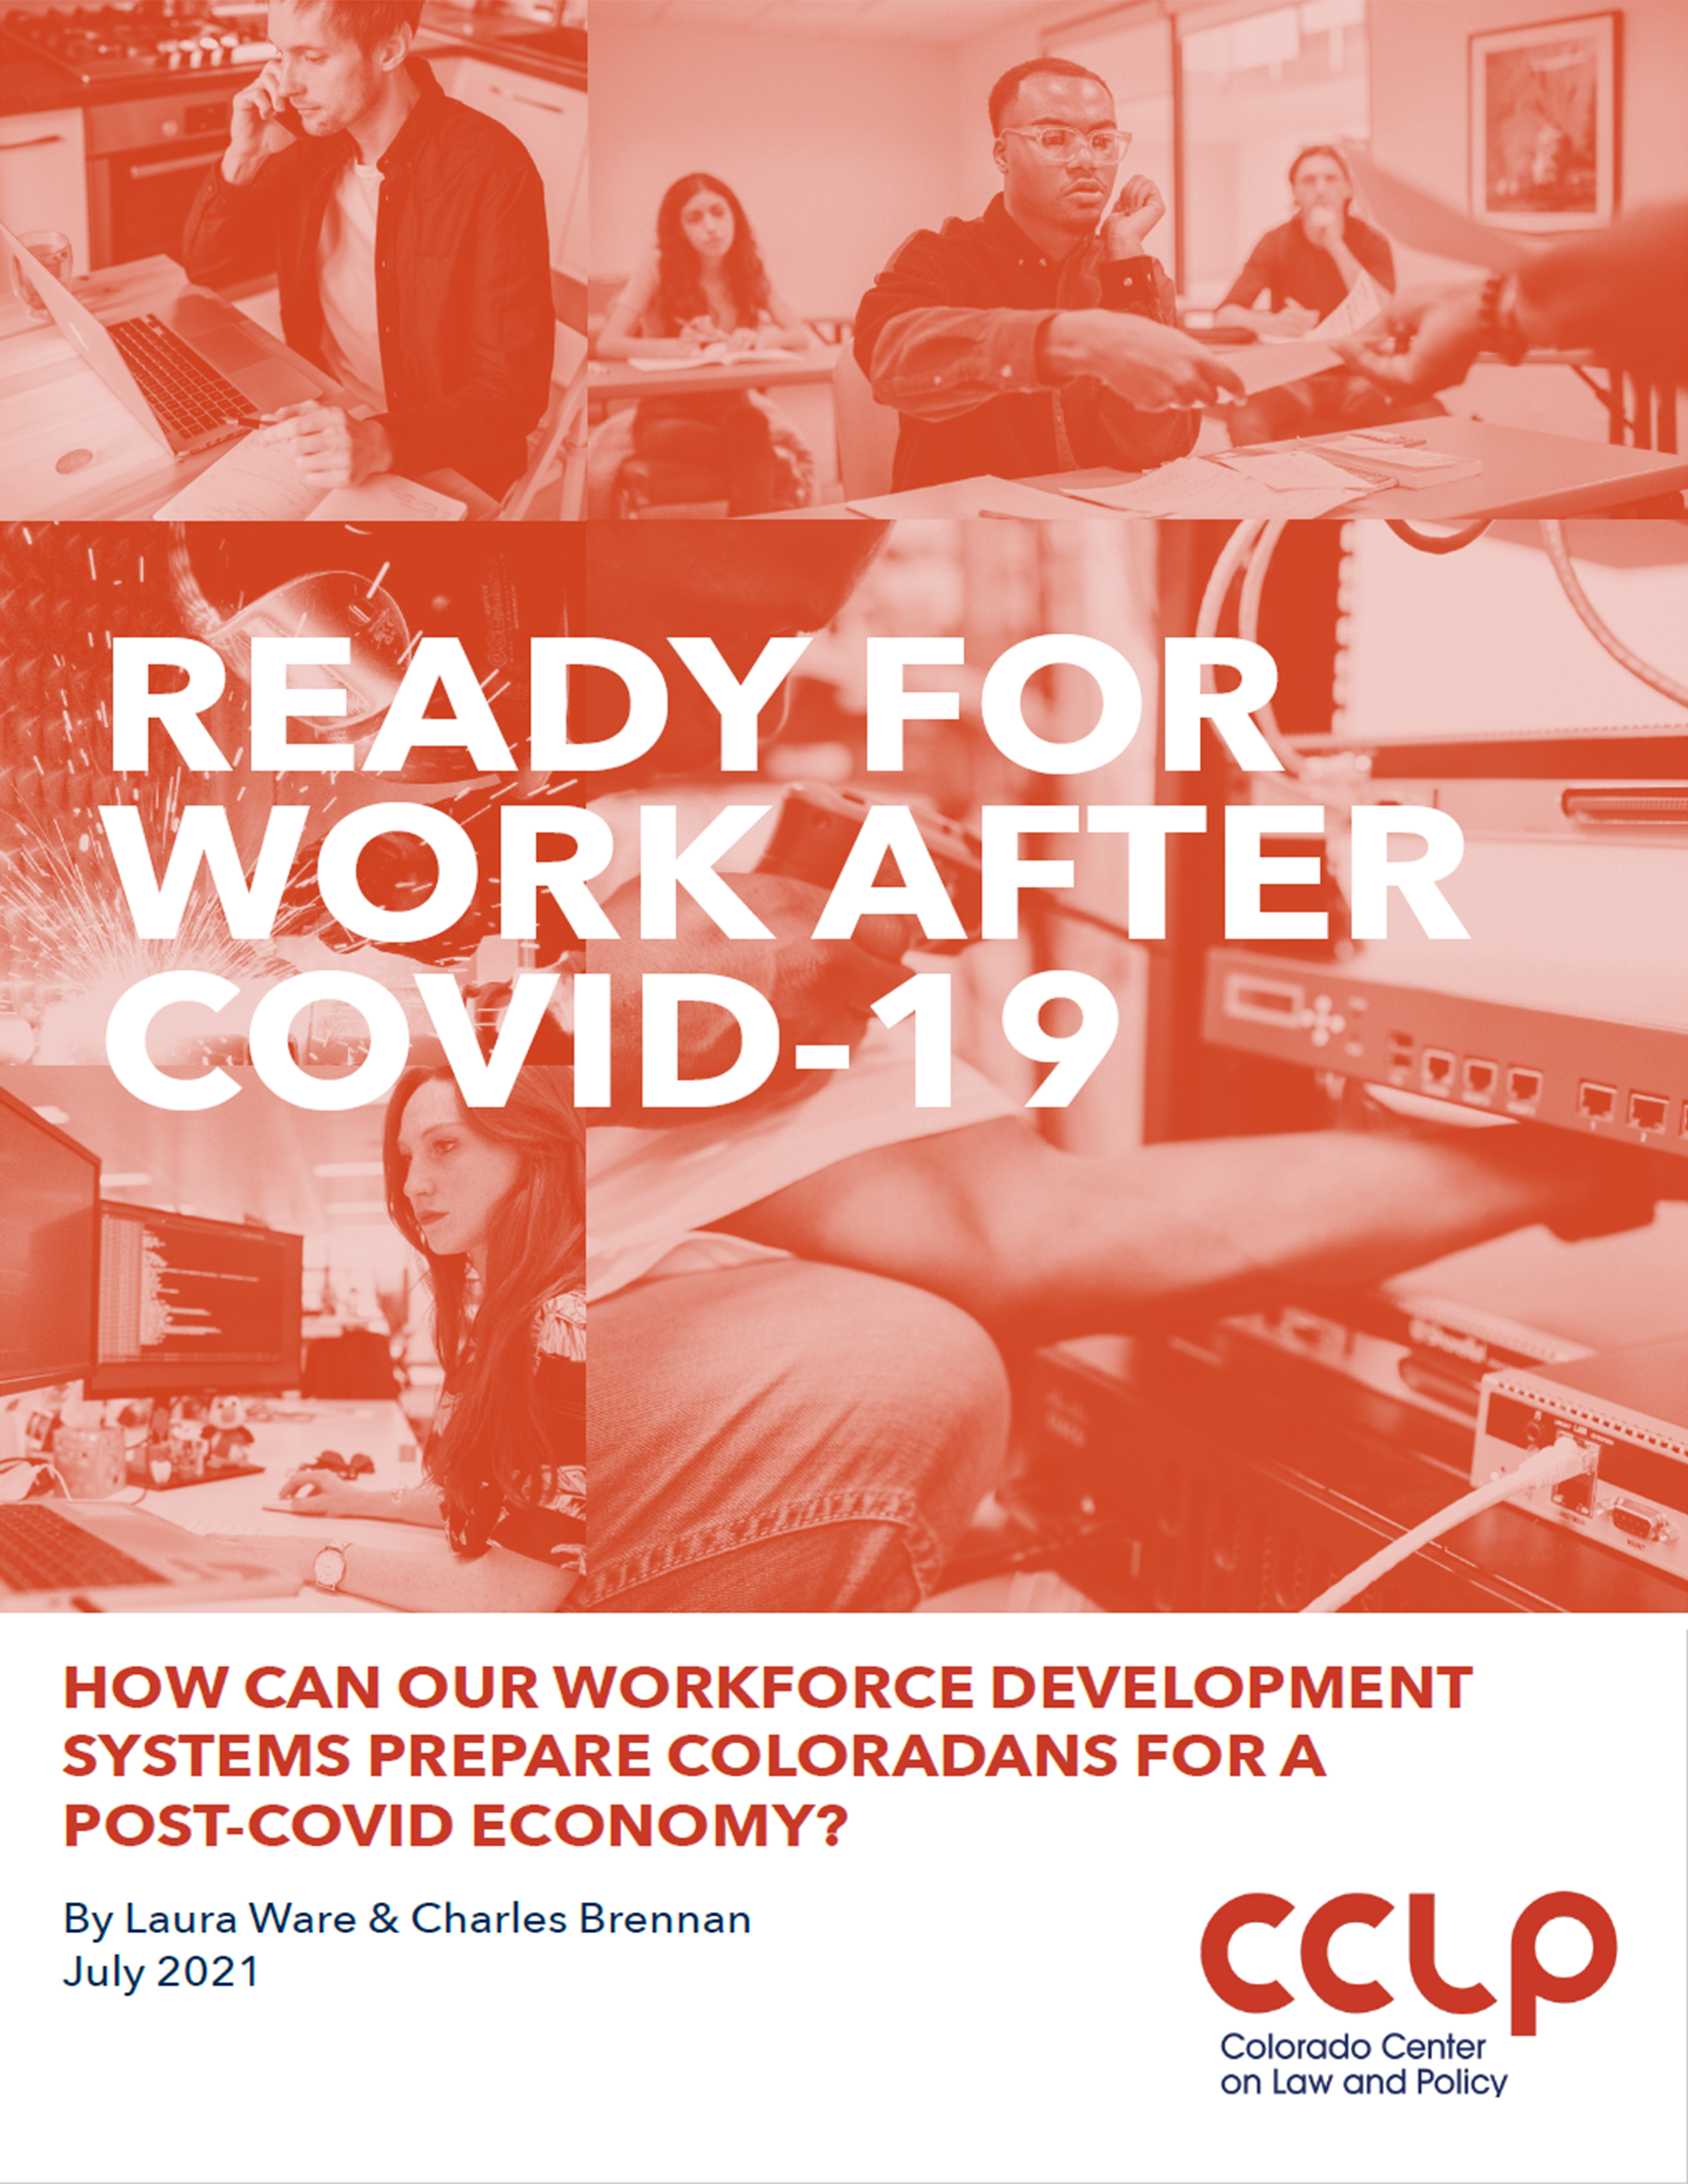 Ready for work after COVID-19 report cover image